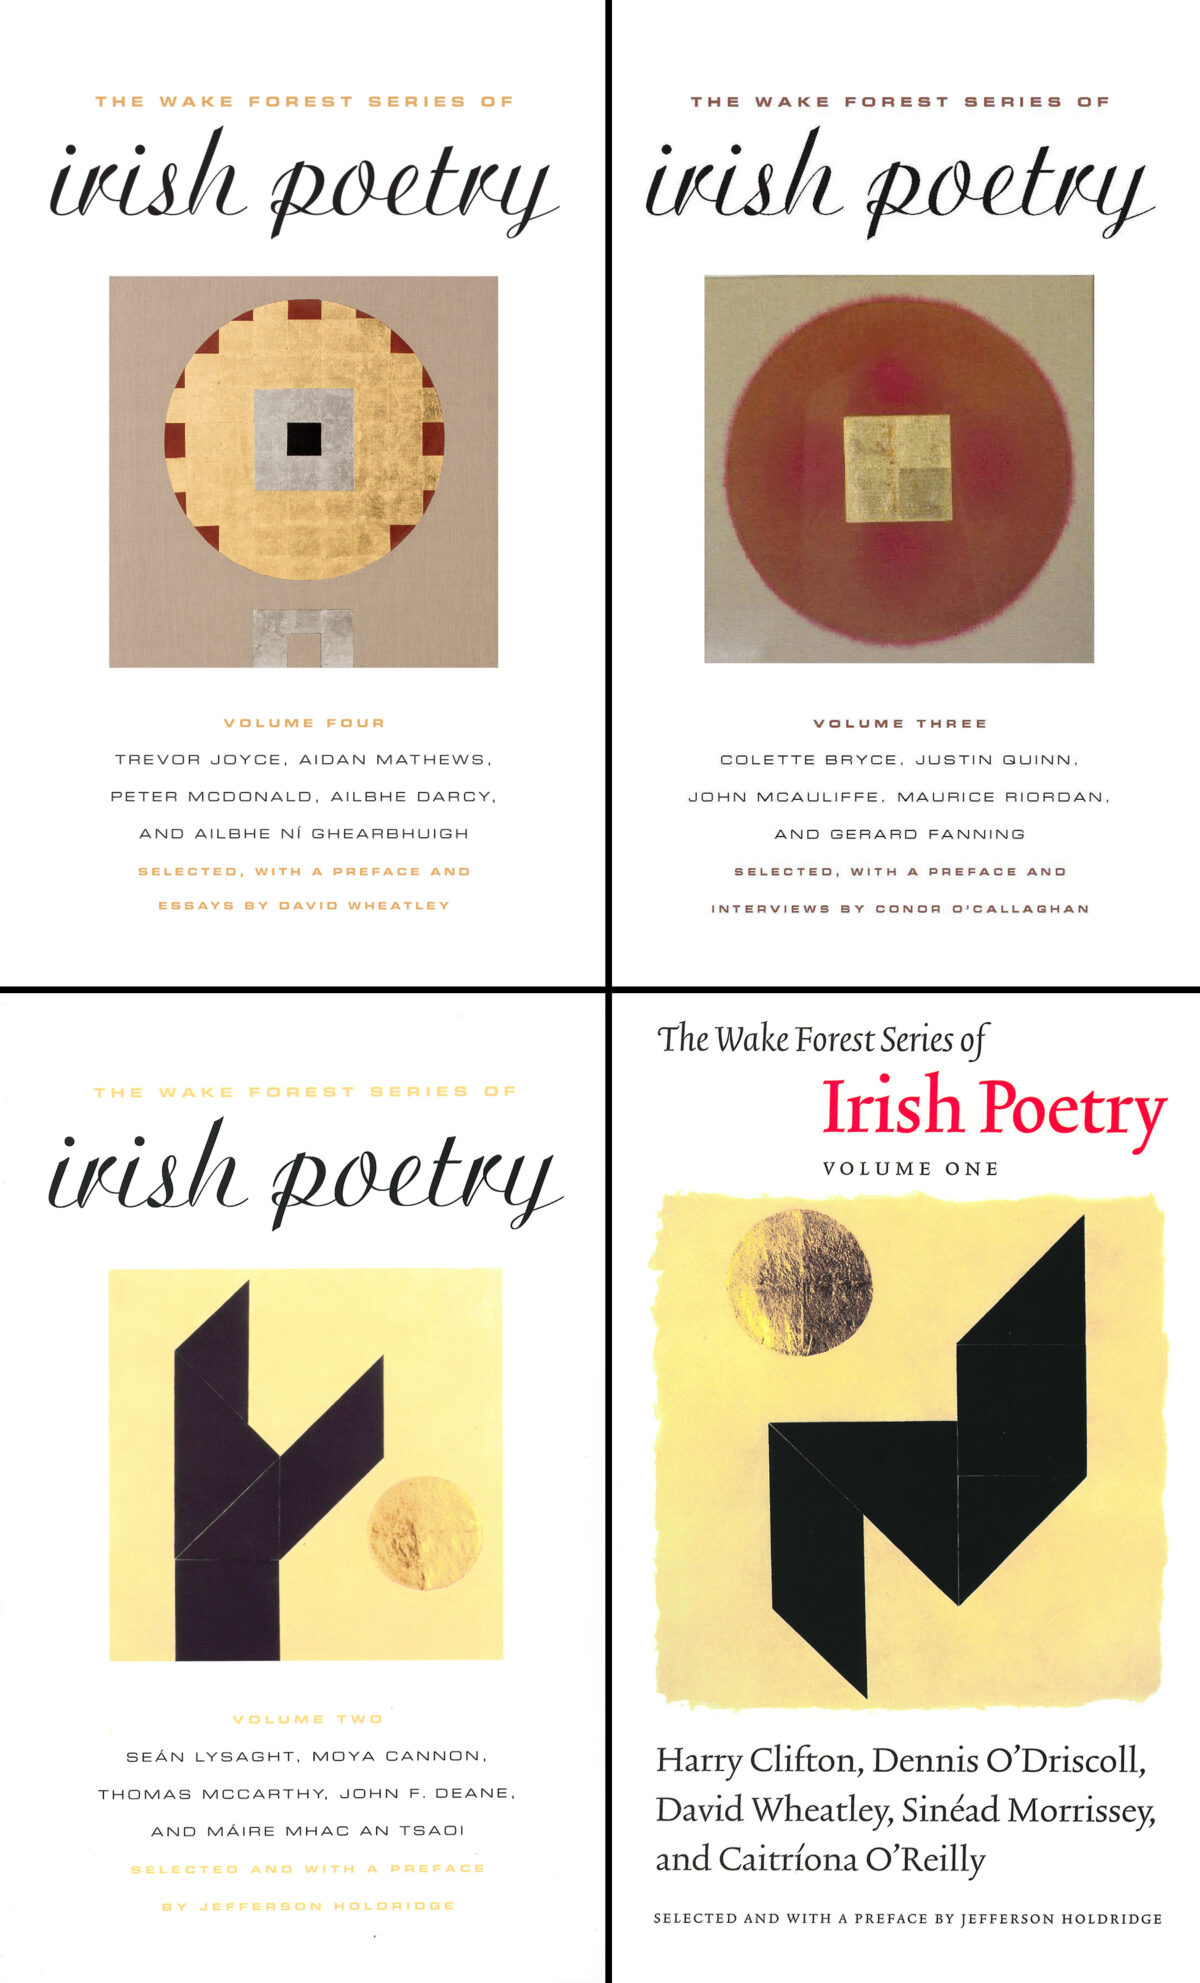 The Wake Forest Series of Irish Poetry Volumes I-IV